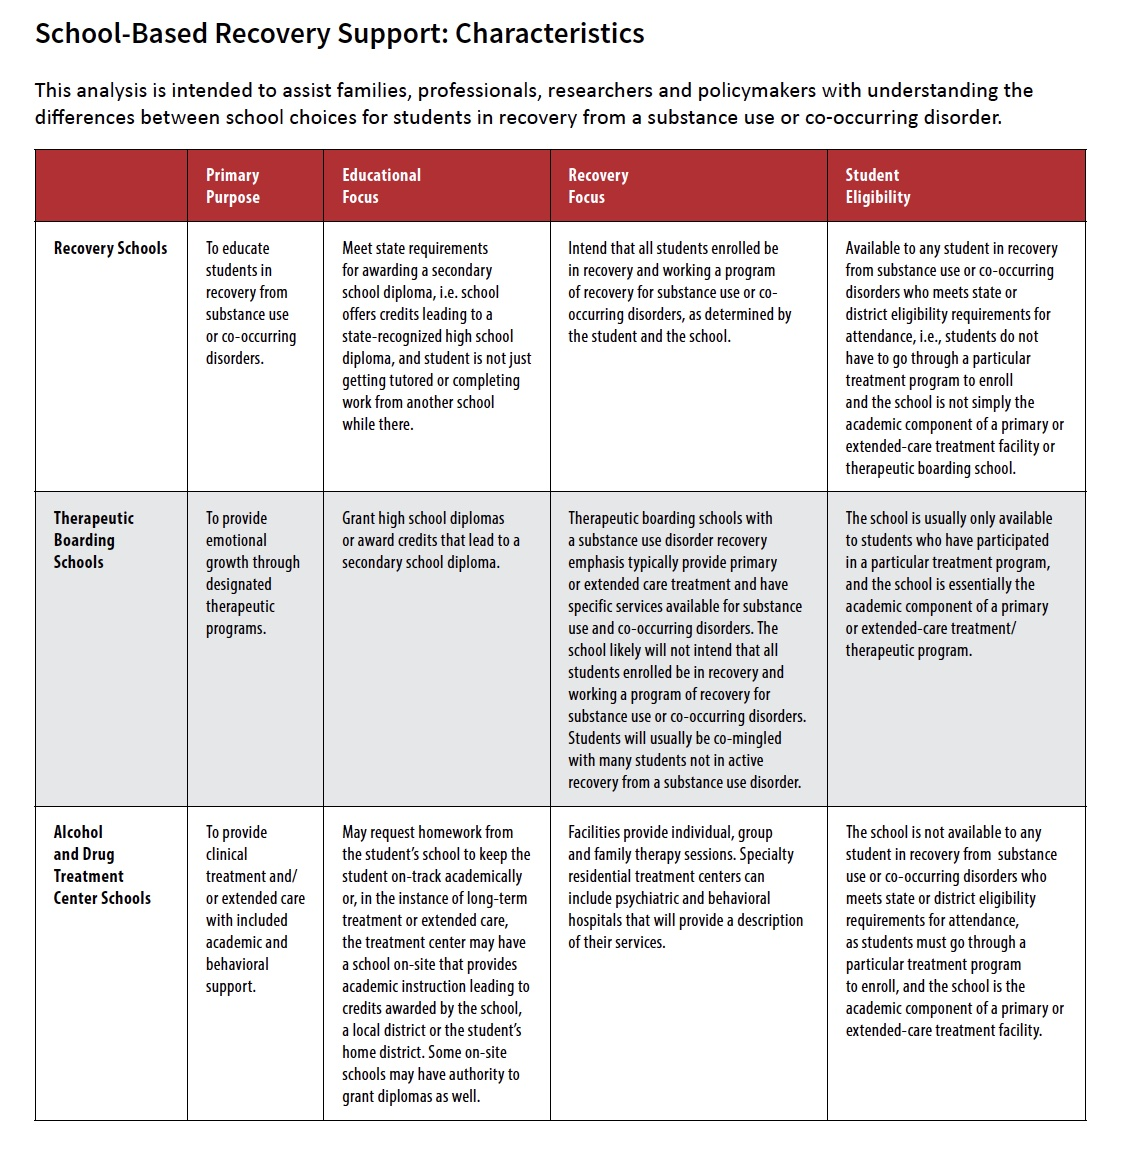 School-Based Recovery Support